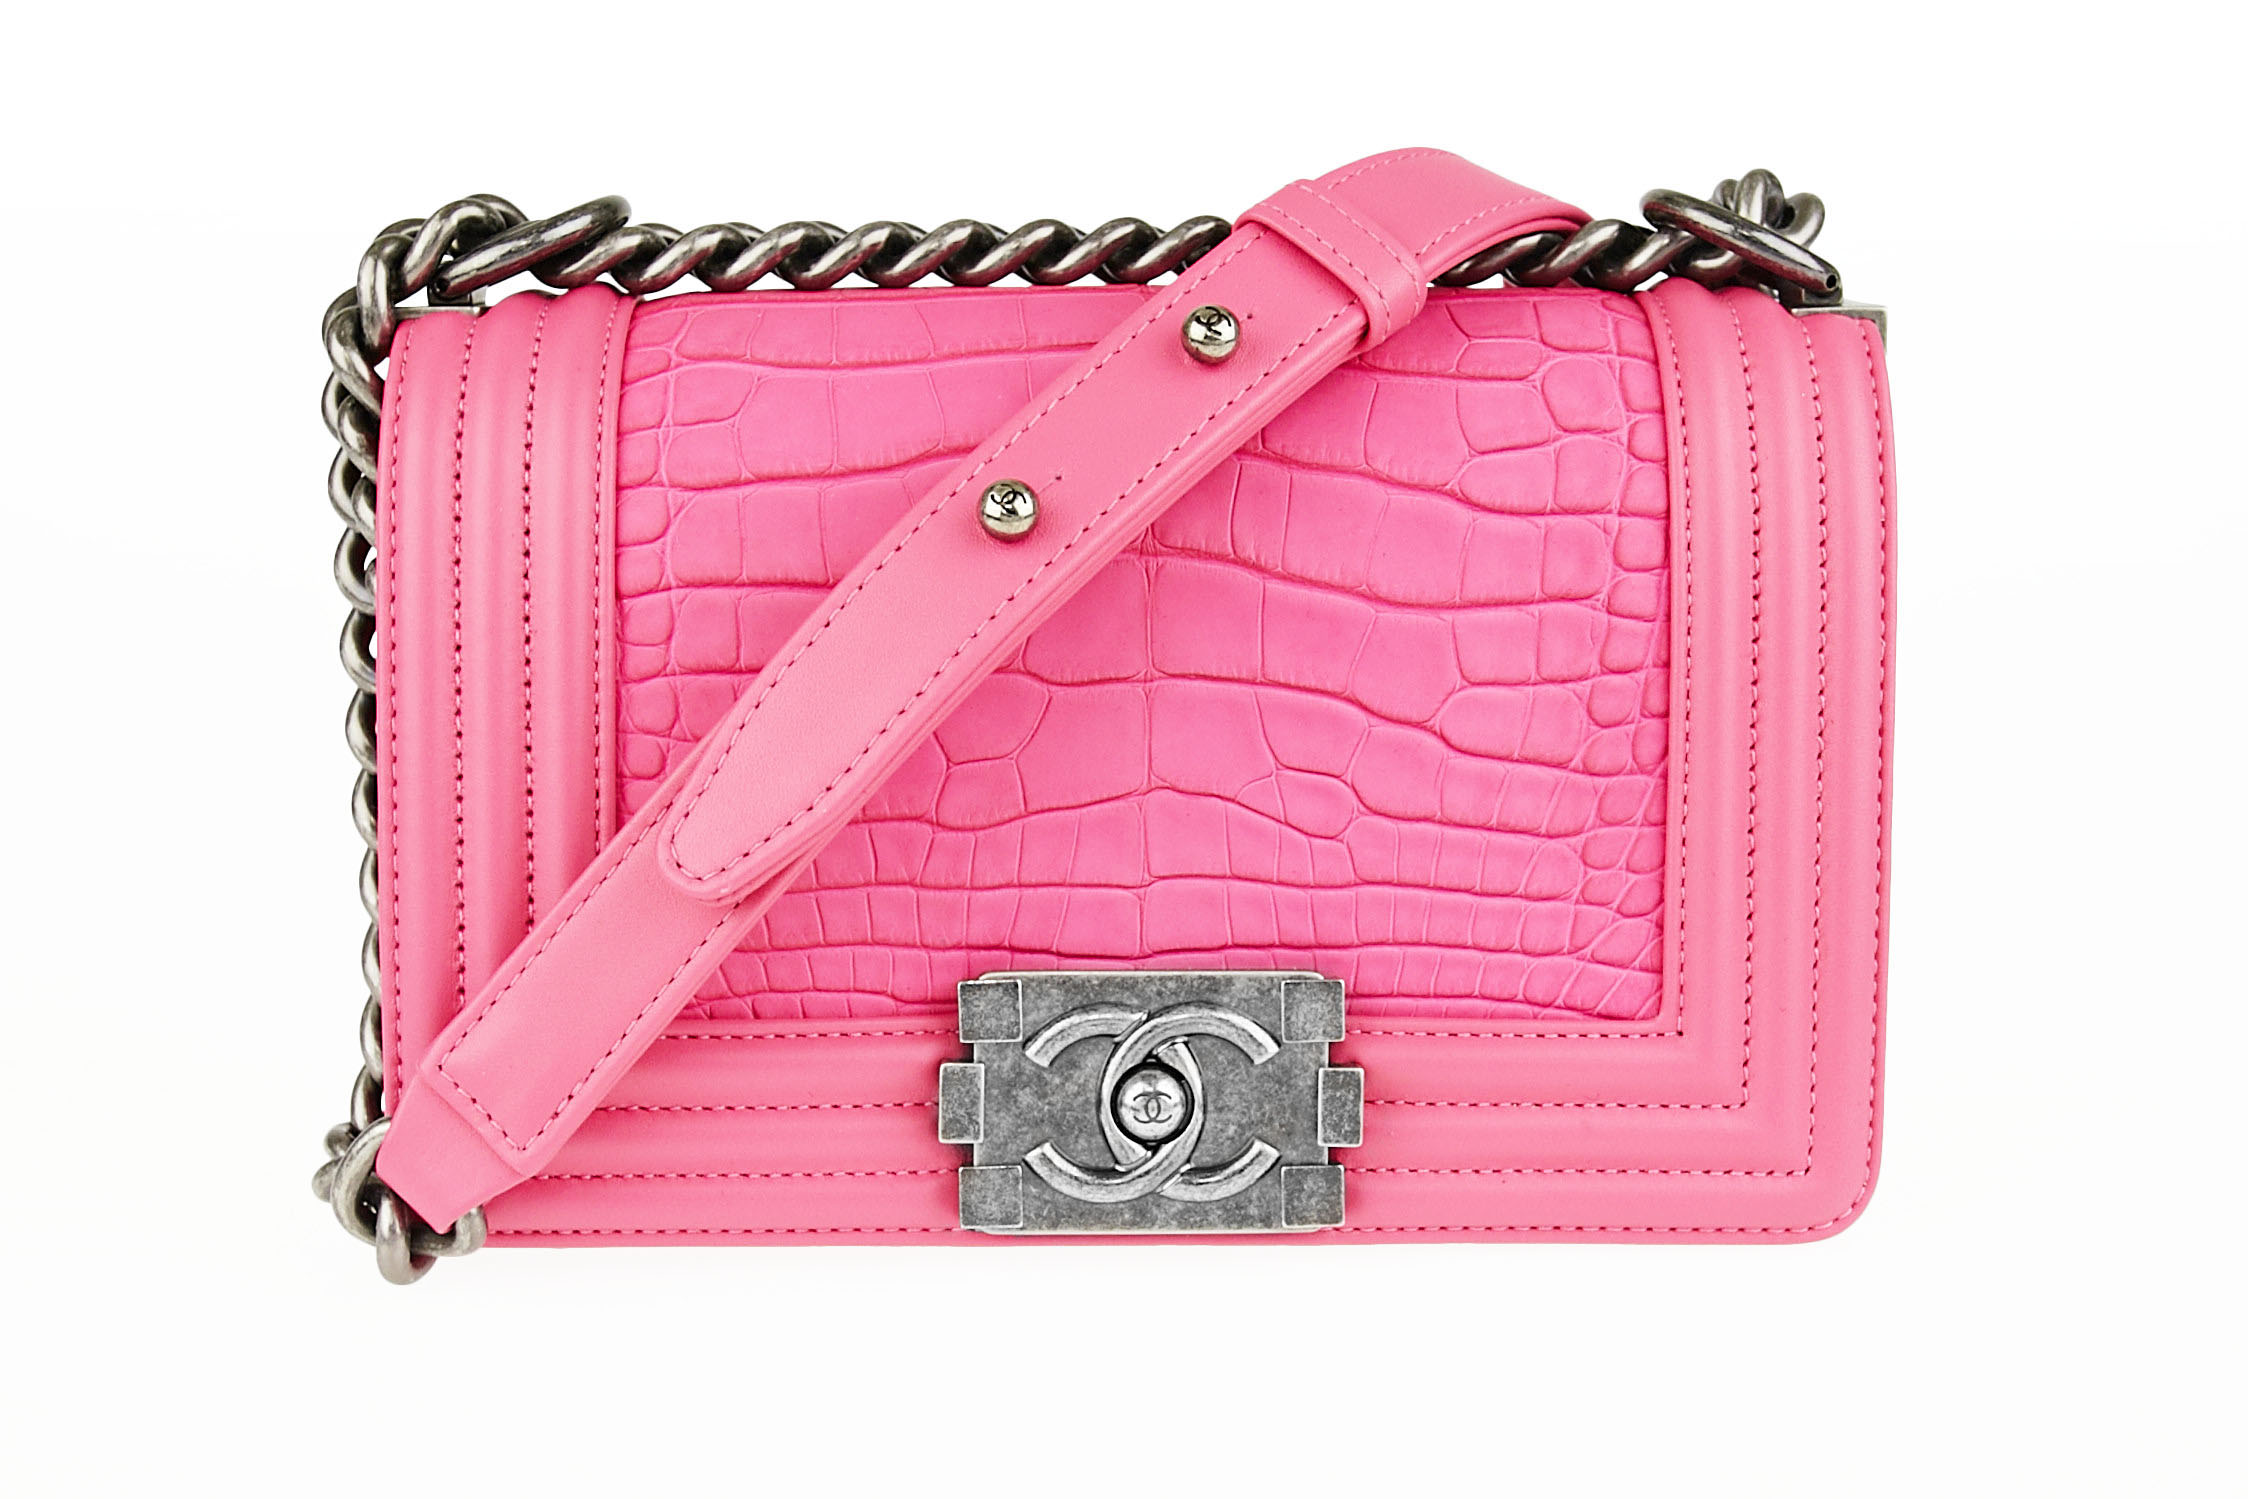 7c7e263e16f Talk about Bag Goals. Chanel Hot Pink Matte Alligator Boy Bag